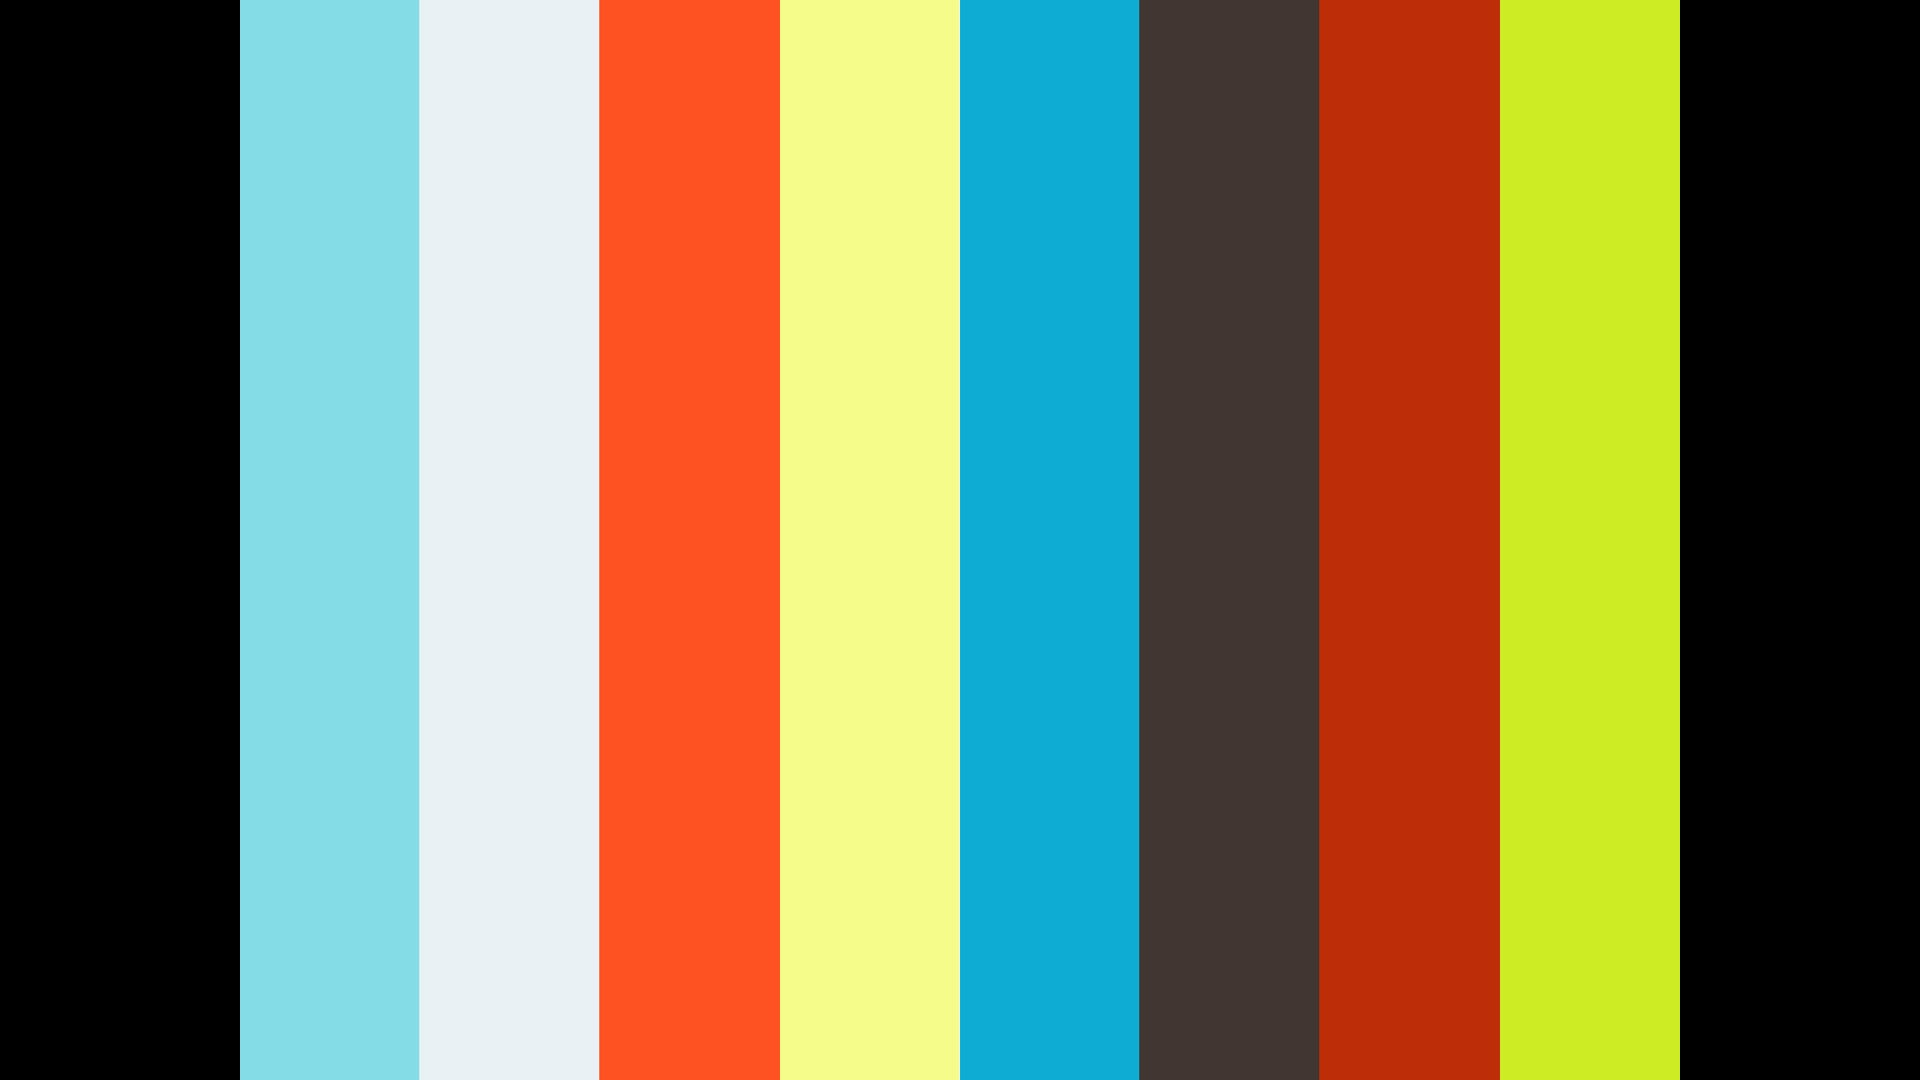 Randal Wark invites you to come experience ChannelNEXT20